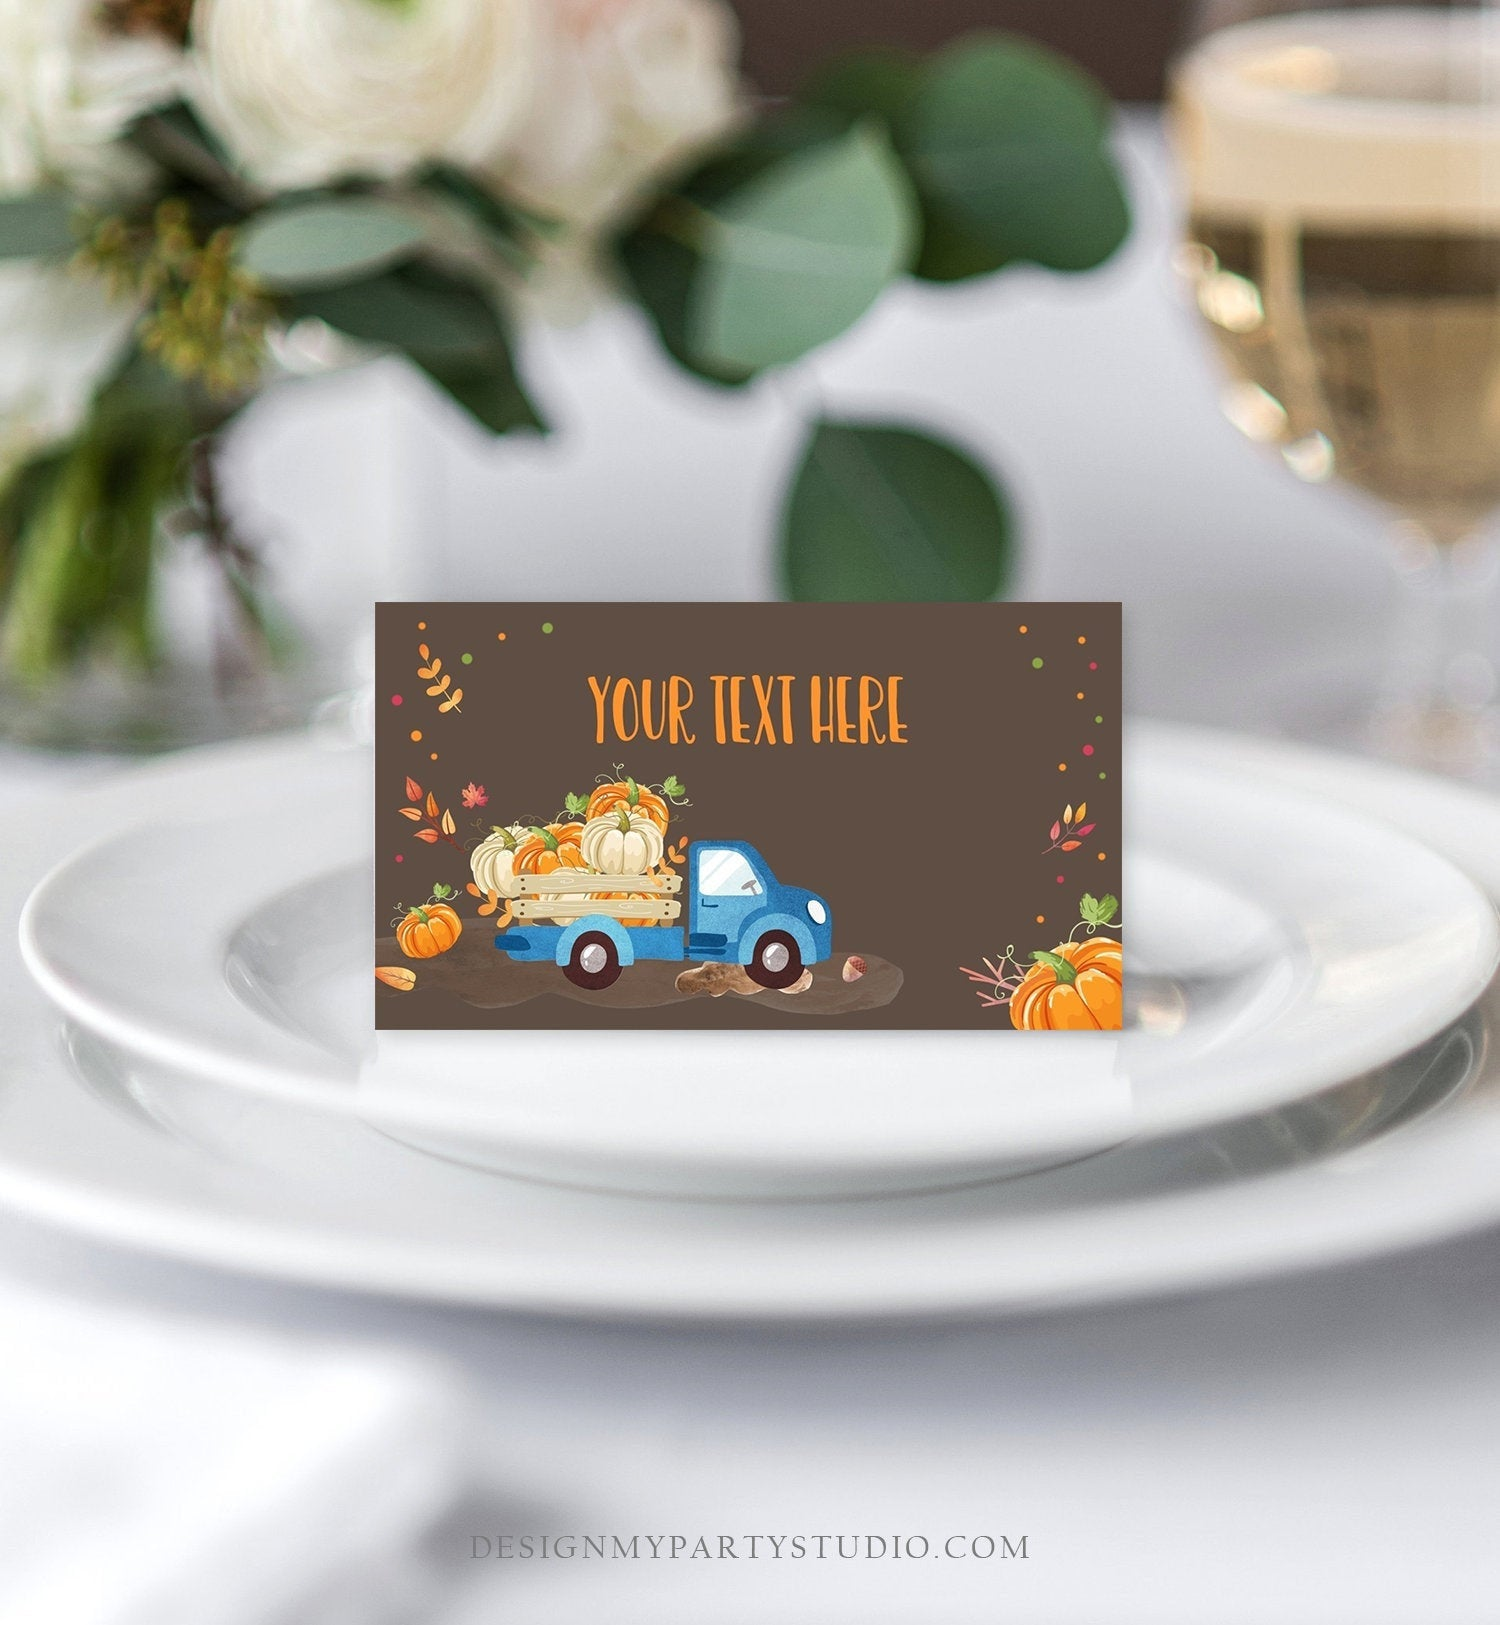 Editable Pumpkin Food Labels Pumpkin Truck Birthday Place Card Fall Harvest Autumn Tent Card Shower Blue Boy Corjl Printable Template 0153